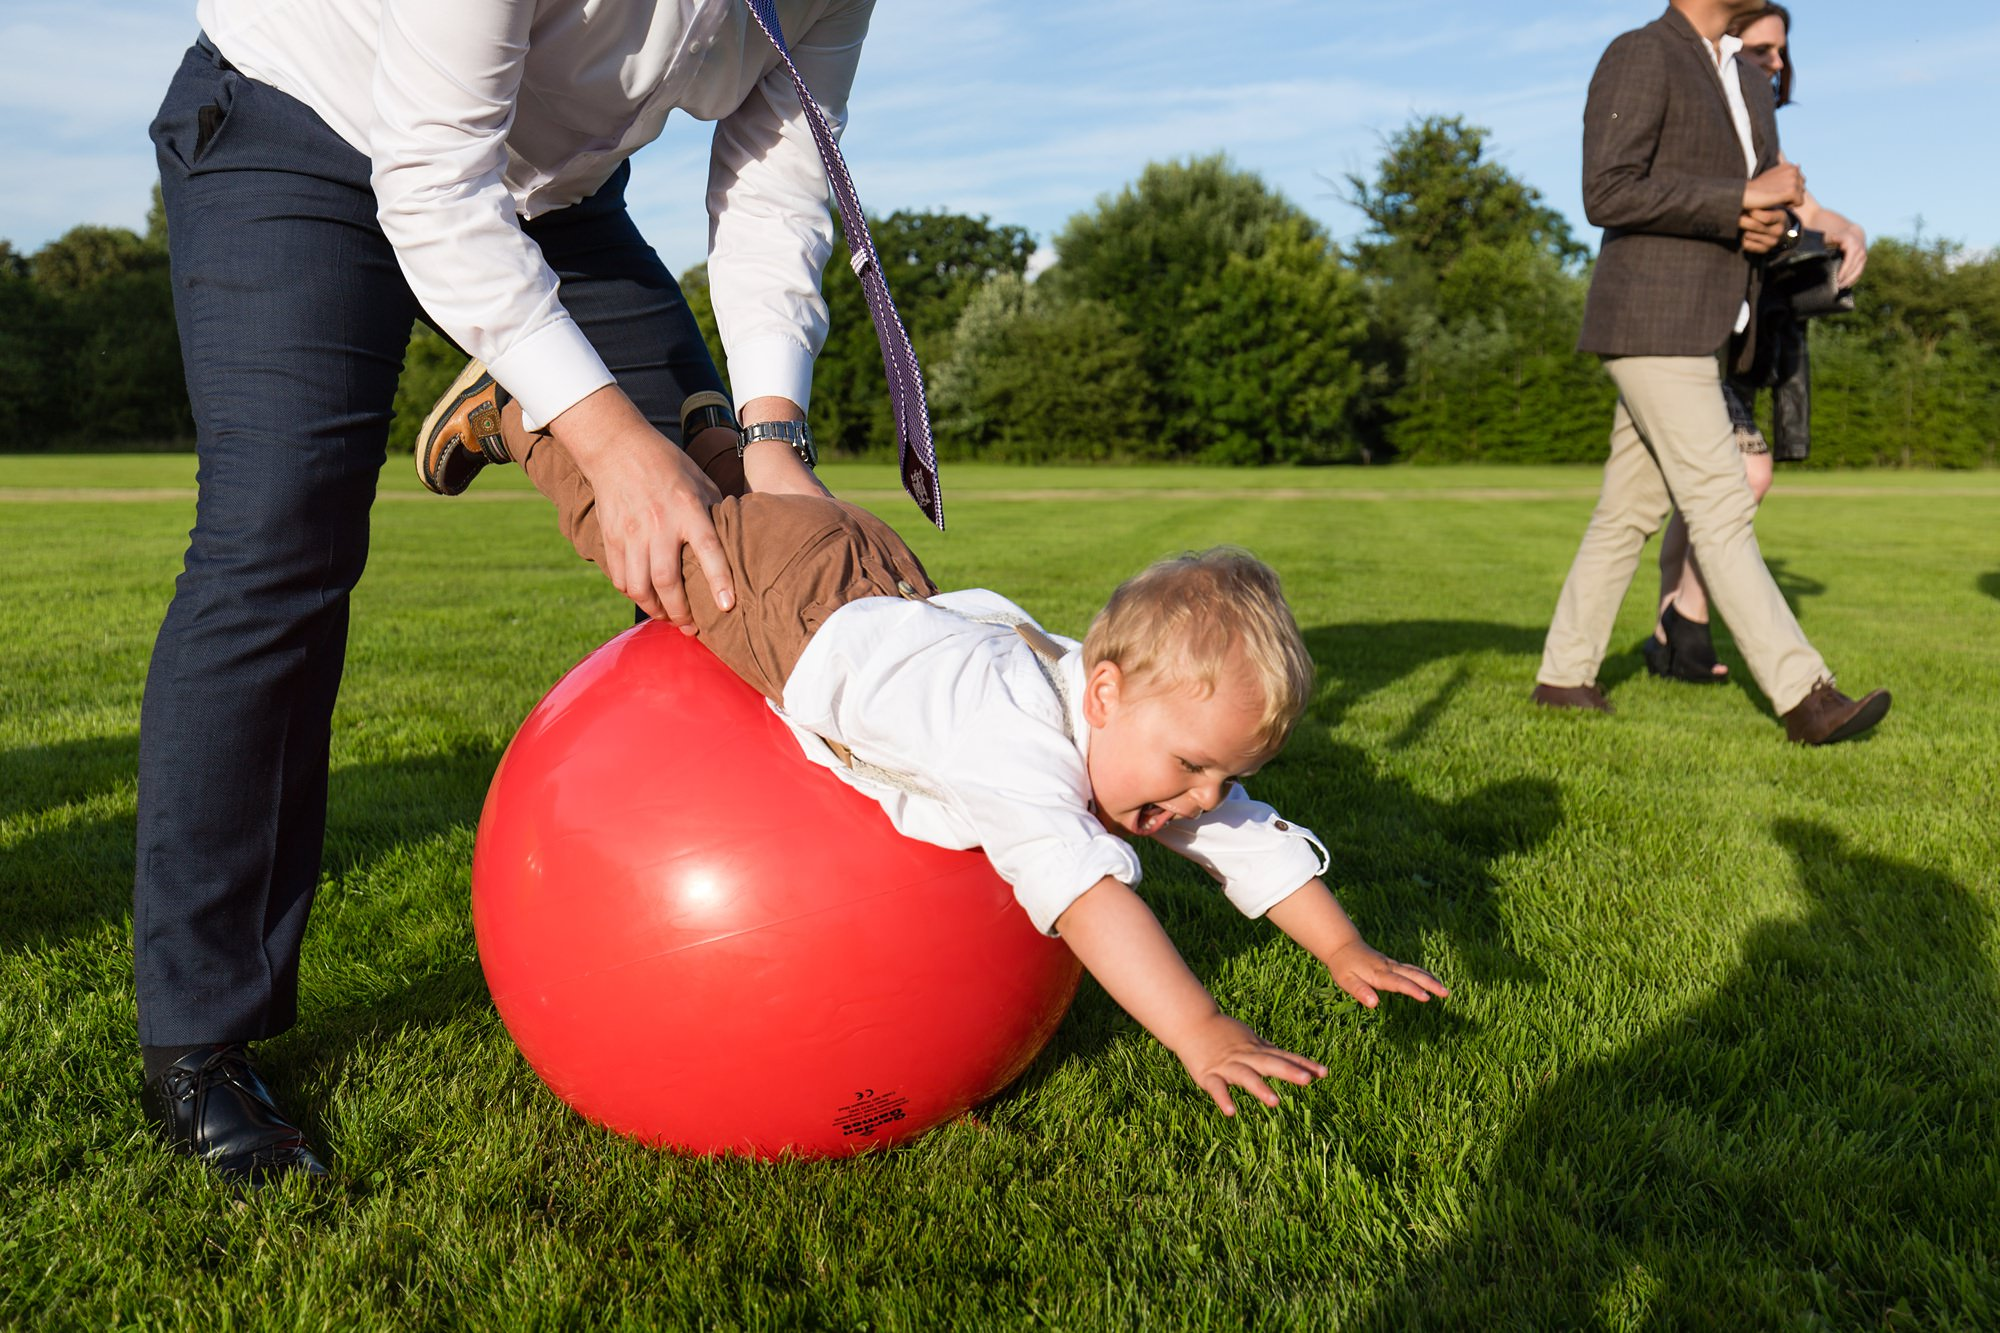 Fun wedding photography kid rolling over spacehopper